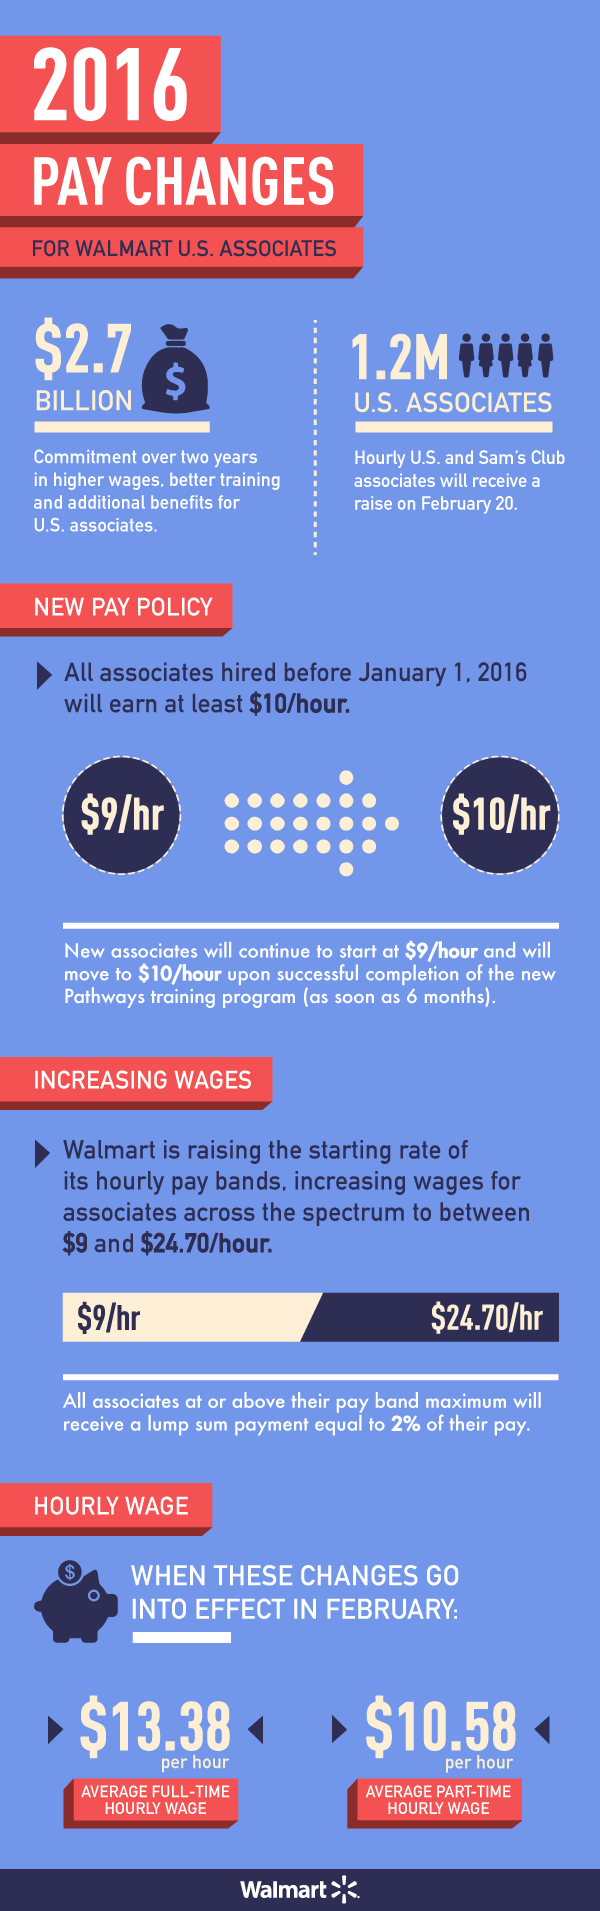 More Than One Million Walmart U S Associates Receive Raises As Part